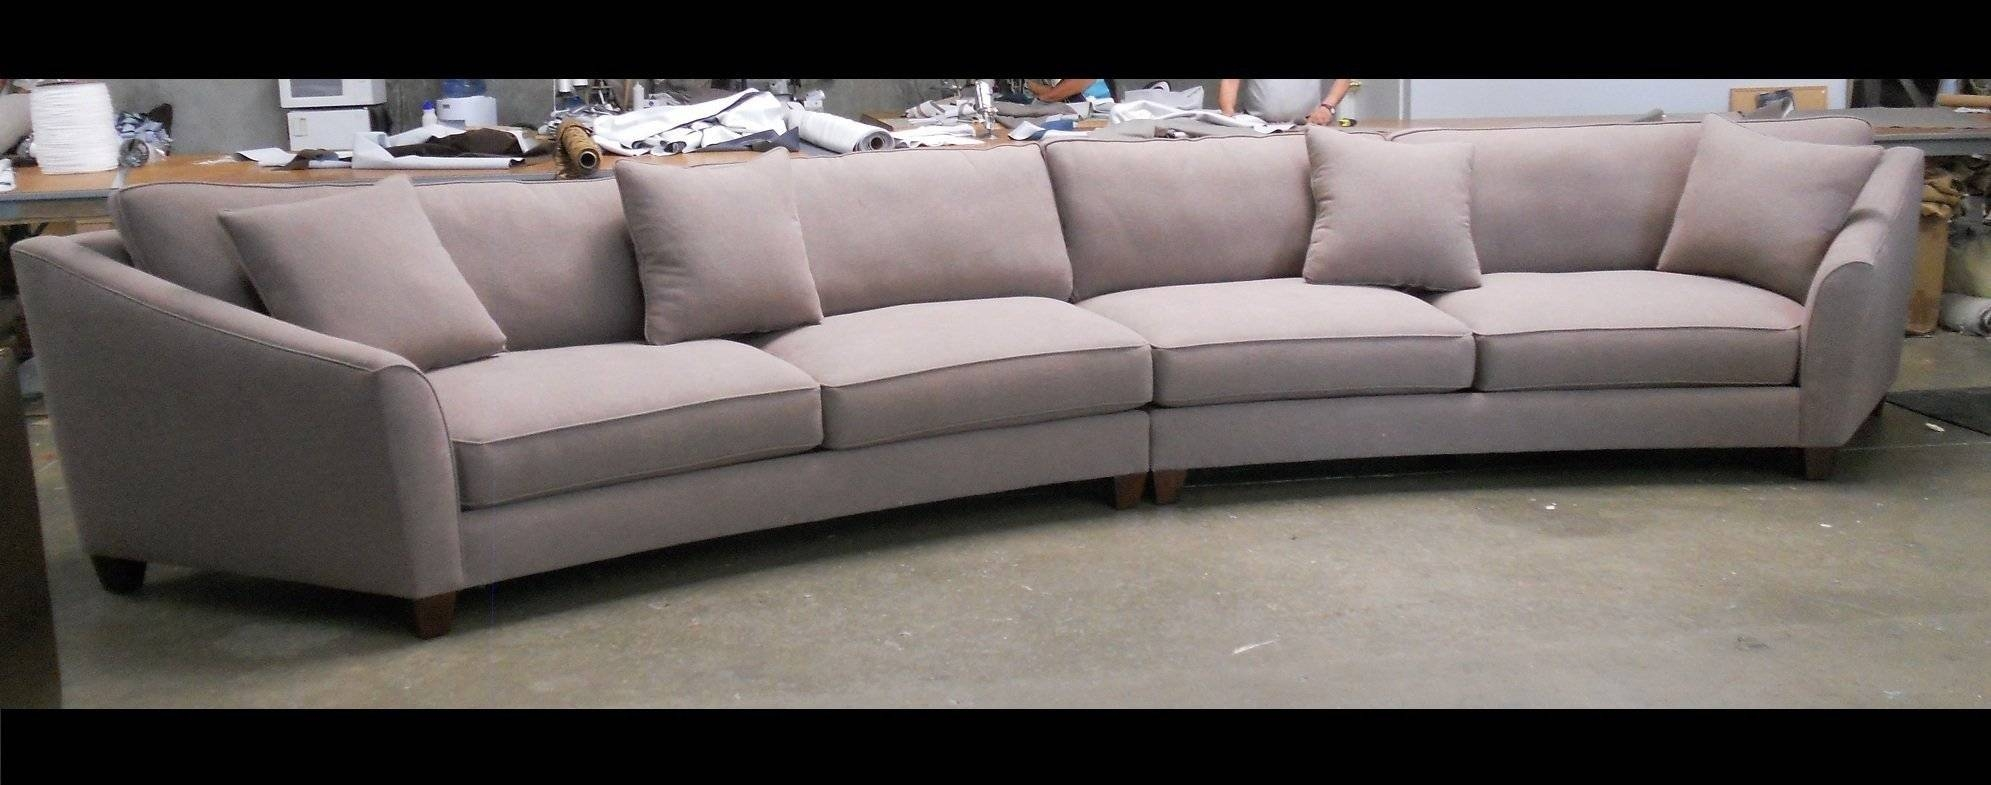 Sofas Center : Circle Sectional Sofa Curved Set Rich Comfortable pertaining to Half Circle Sectional Sofas (Image 10 of 15)